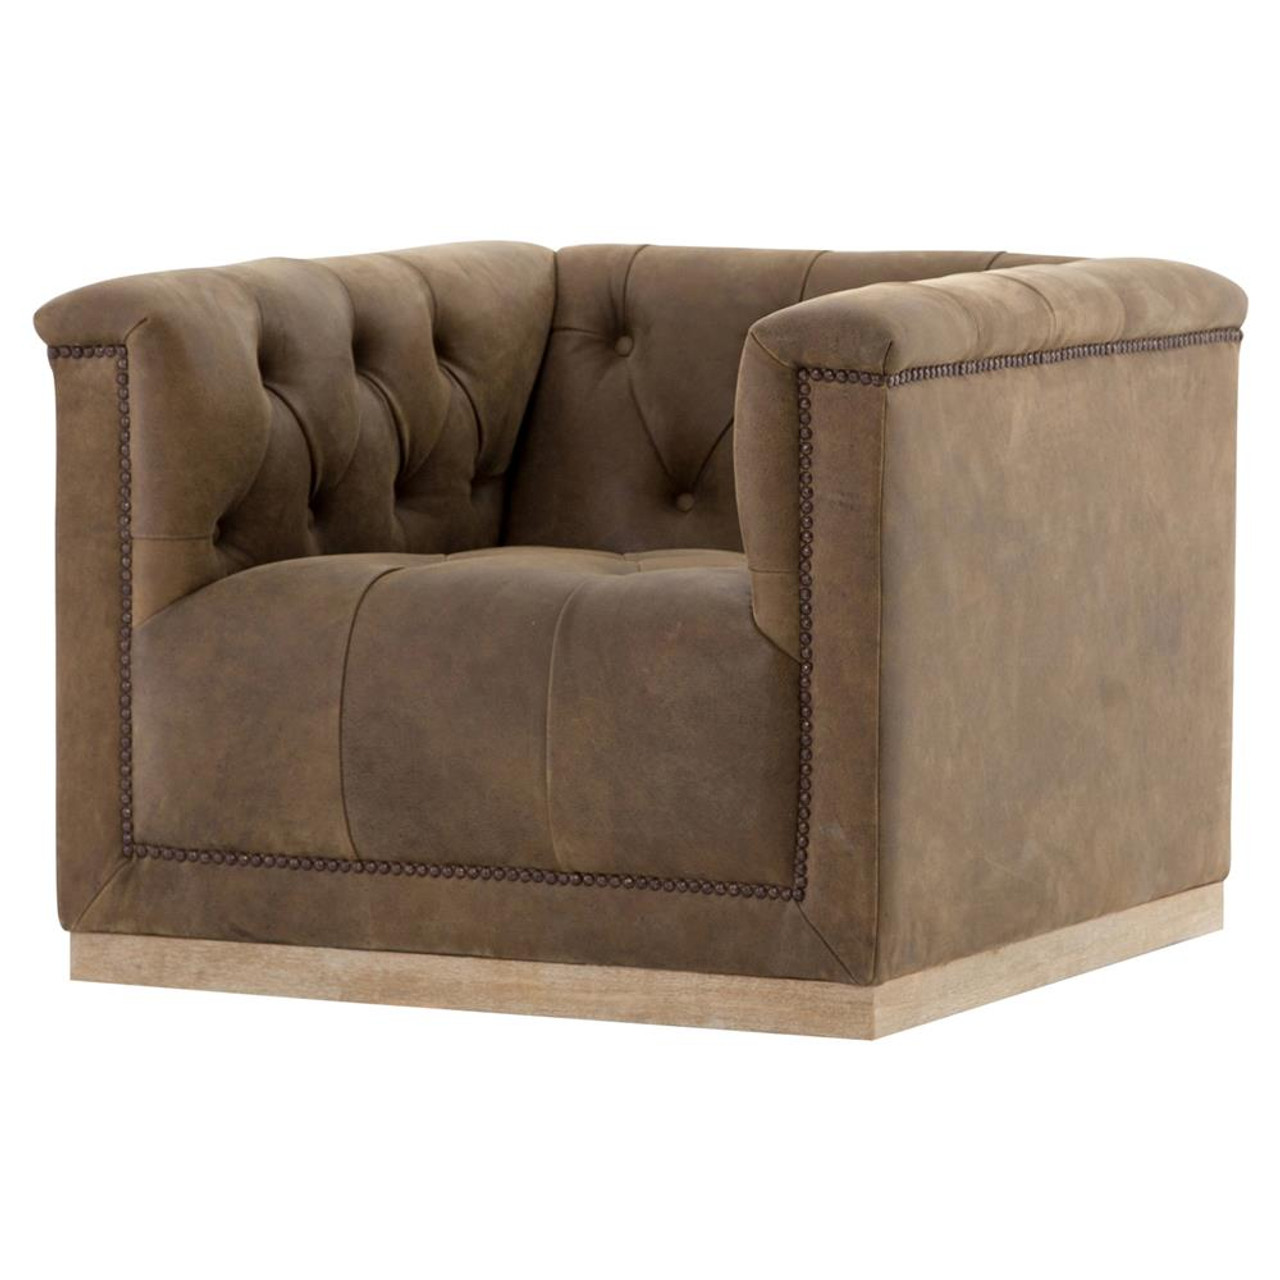 Maxx Distressed Tufted Leather Swivel Club Chair